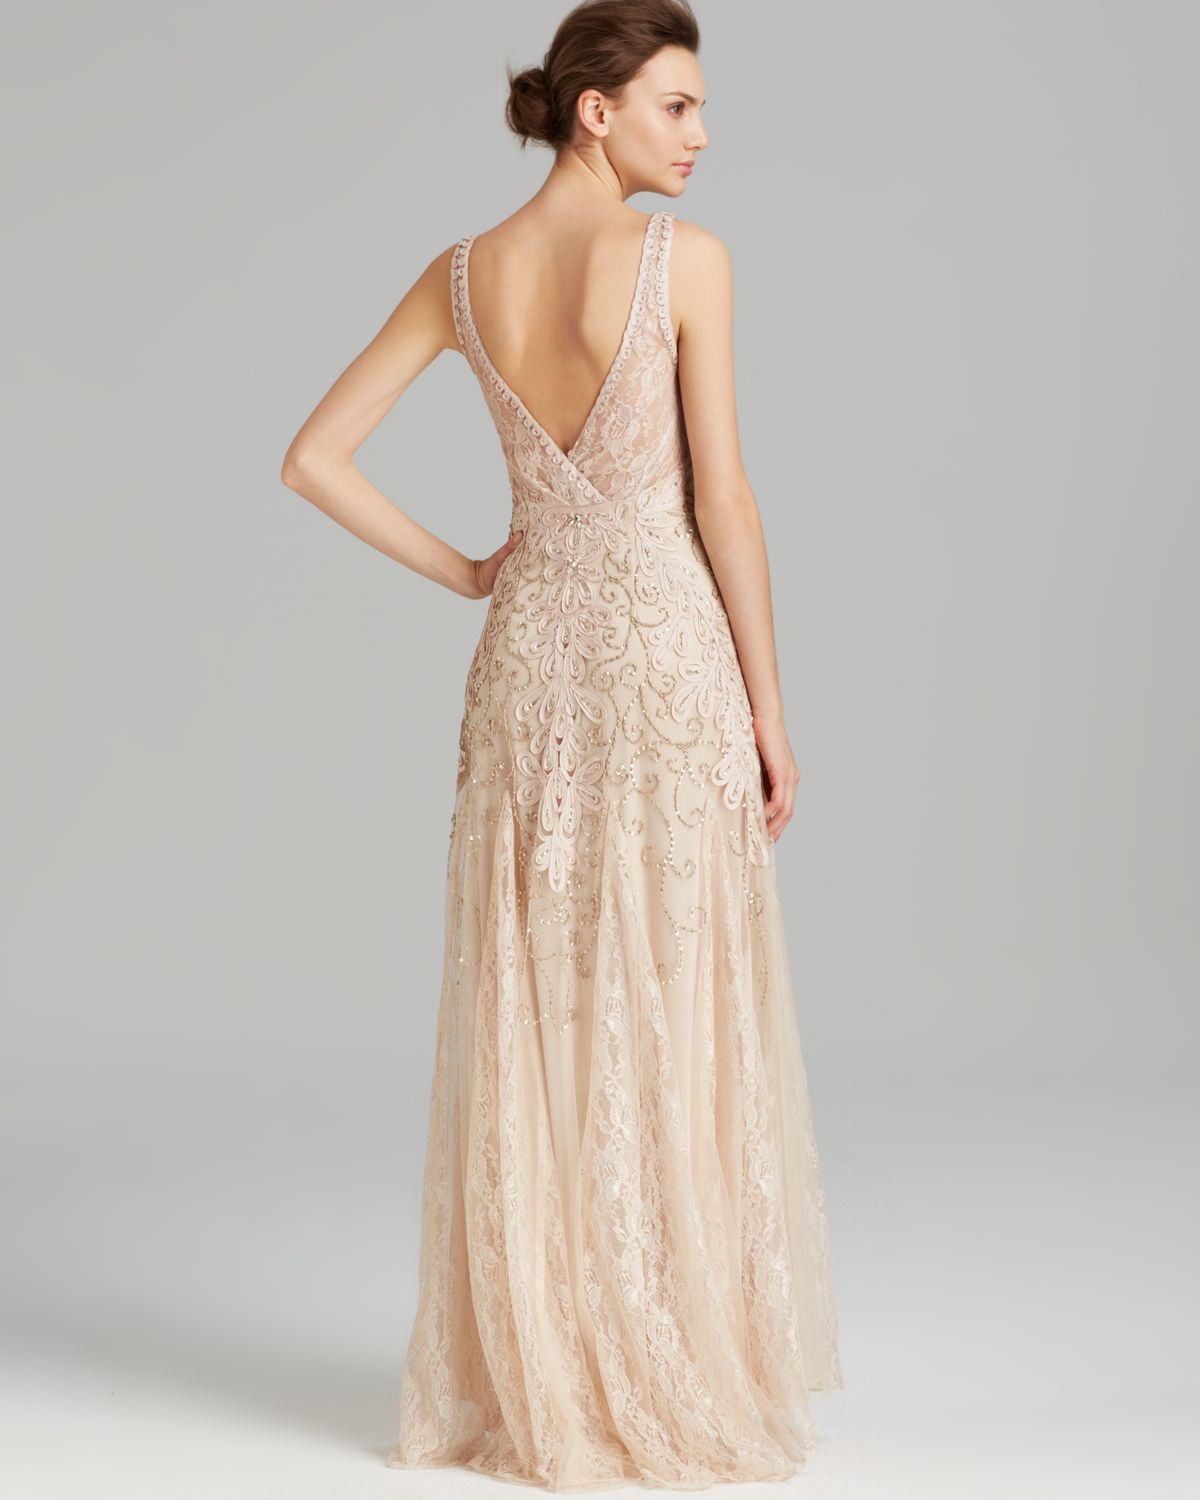 Sue wong Gown - Double V Neck Soutache in Natural | Lyst